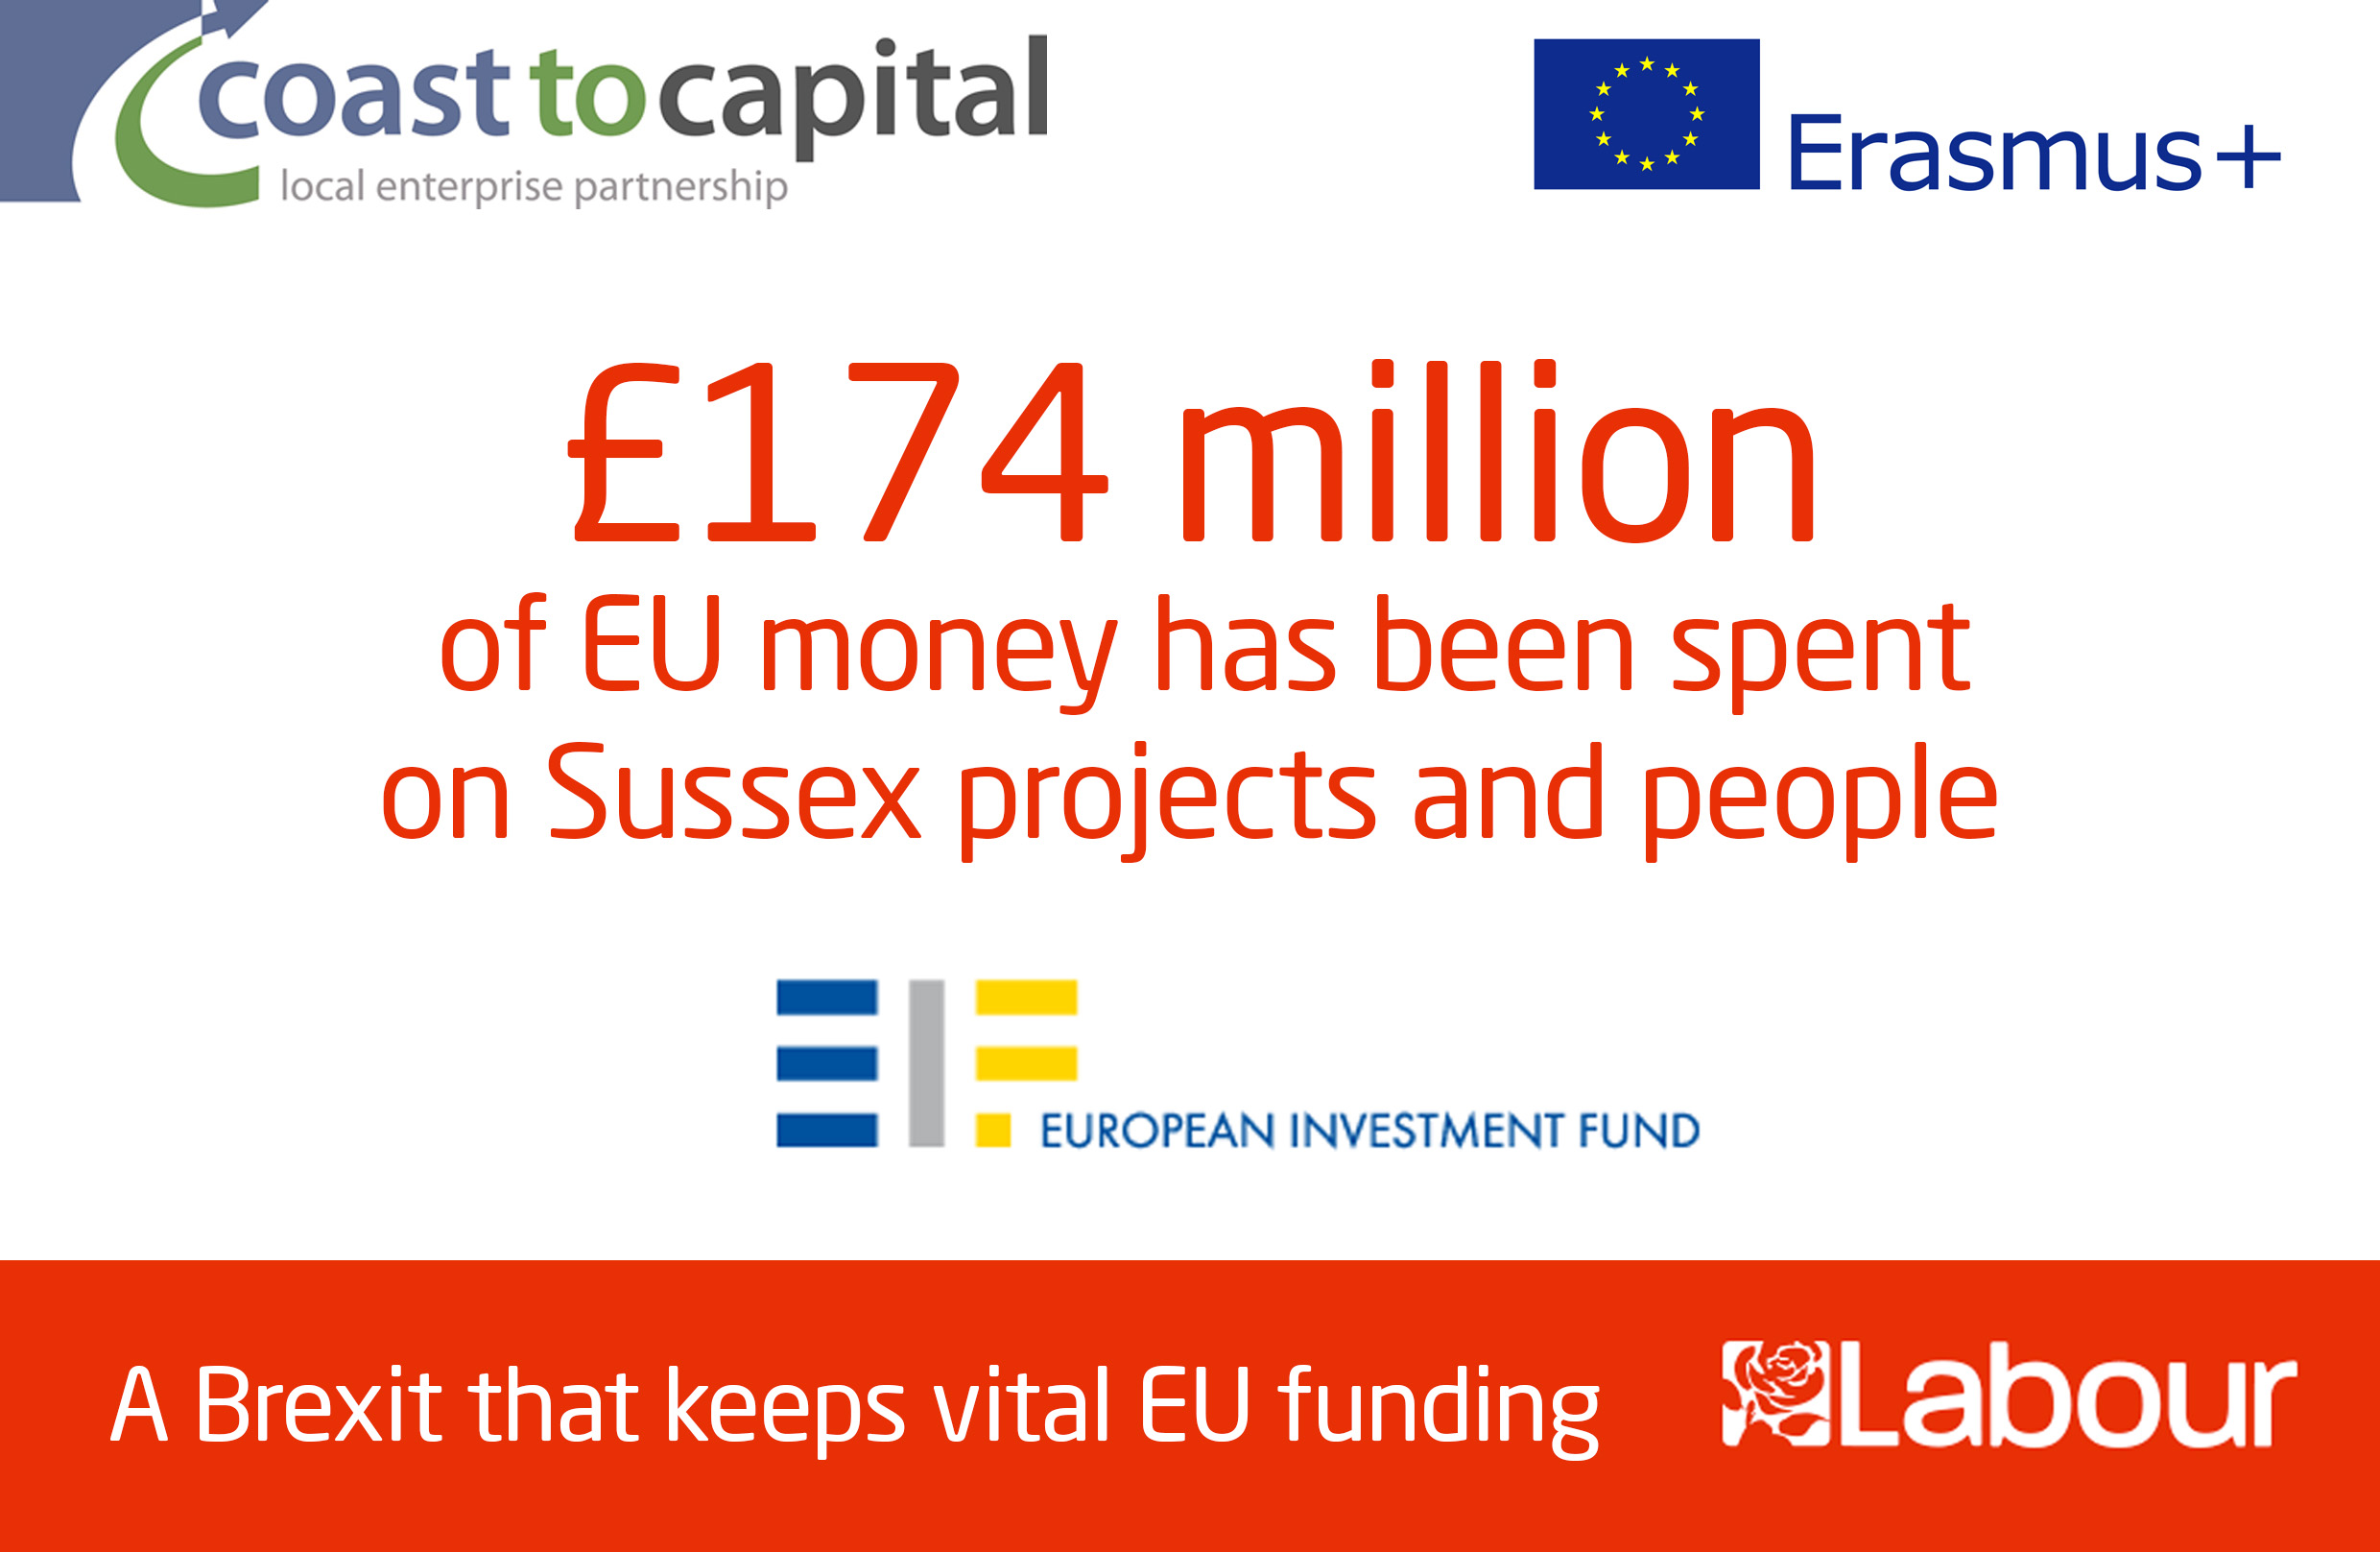 Sussex has received £174 million in EU funding